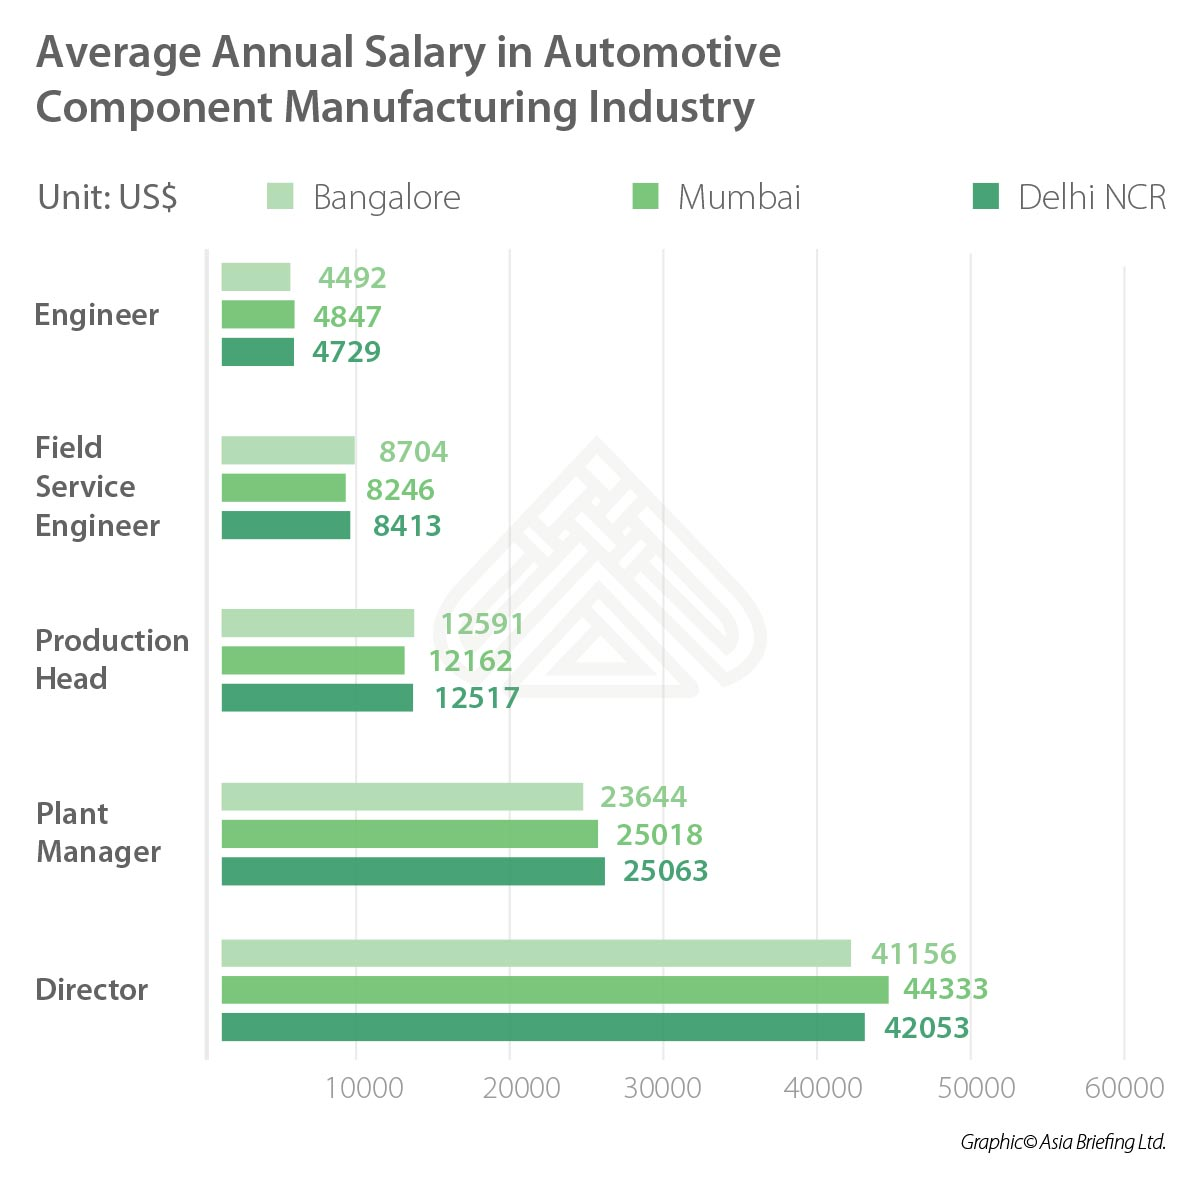 India Briefing-Average Annual Salary in automotive component manufacturing industry